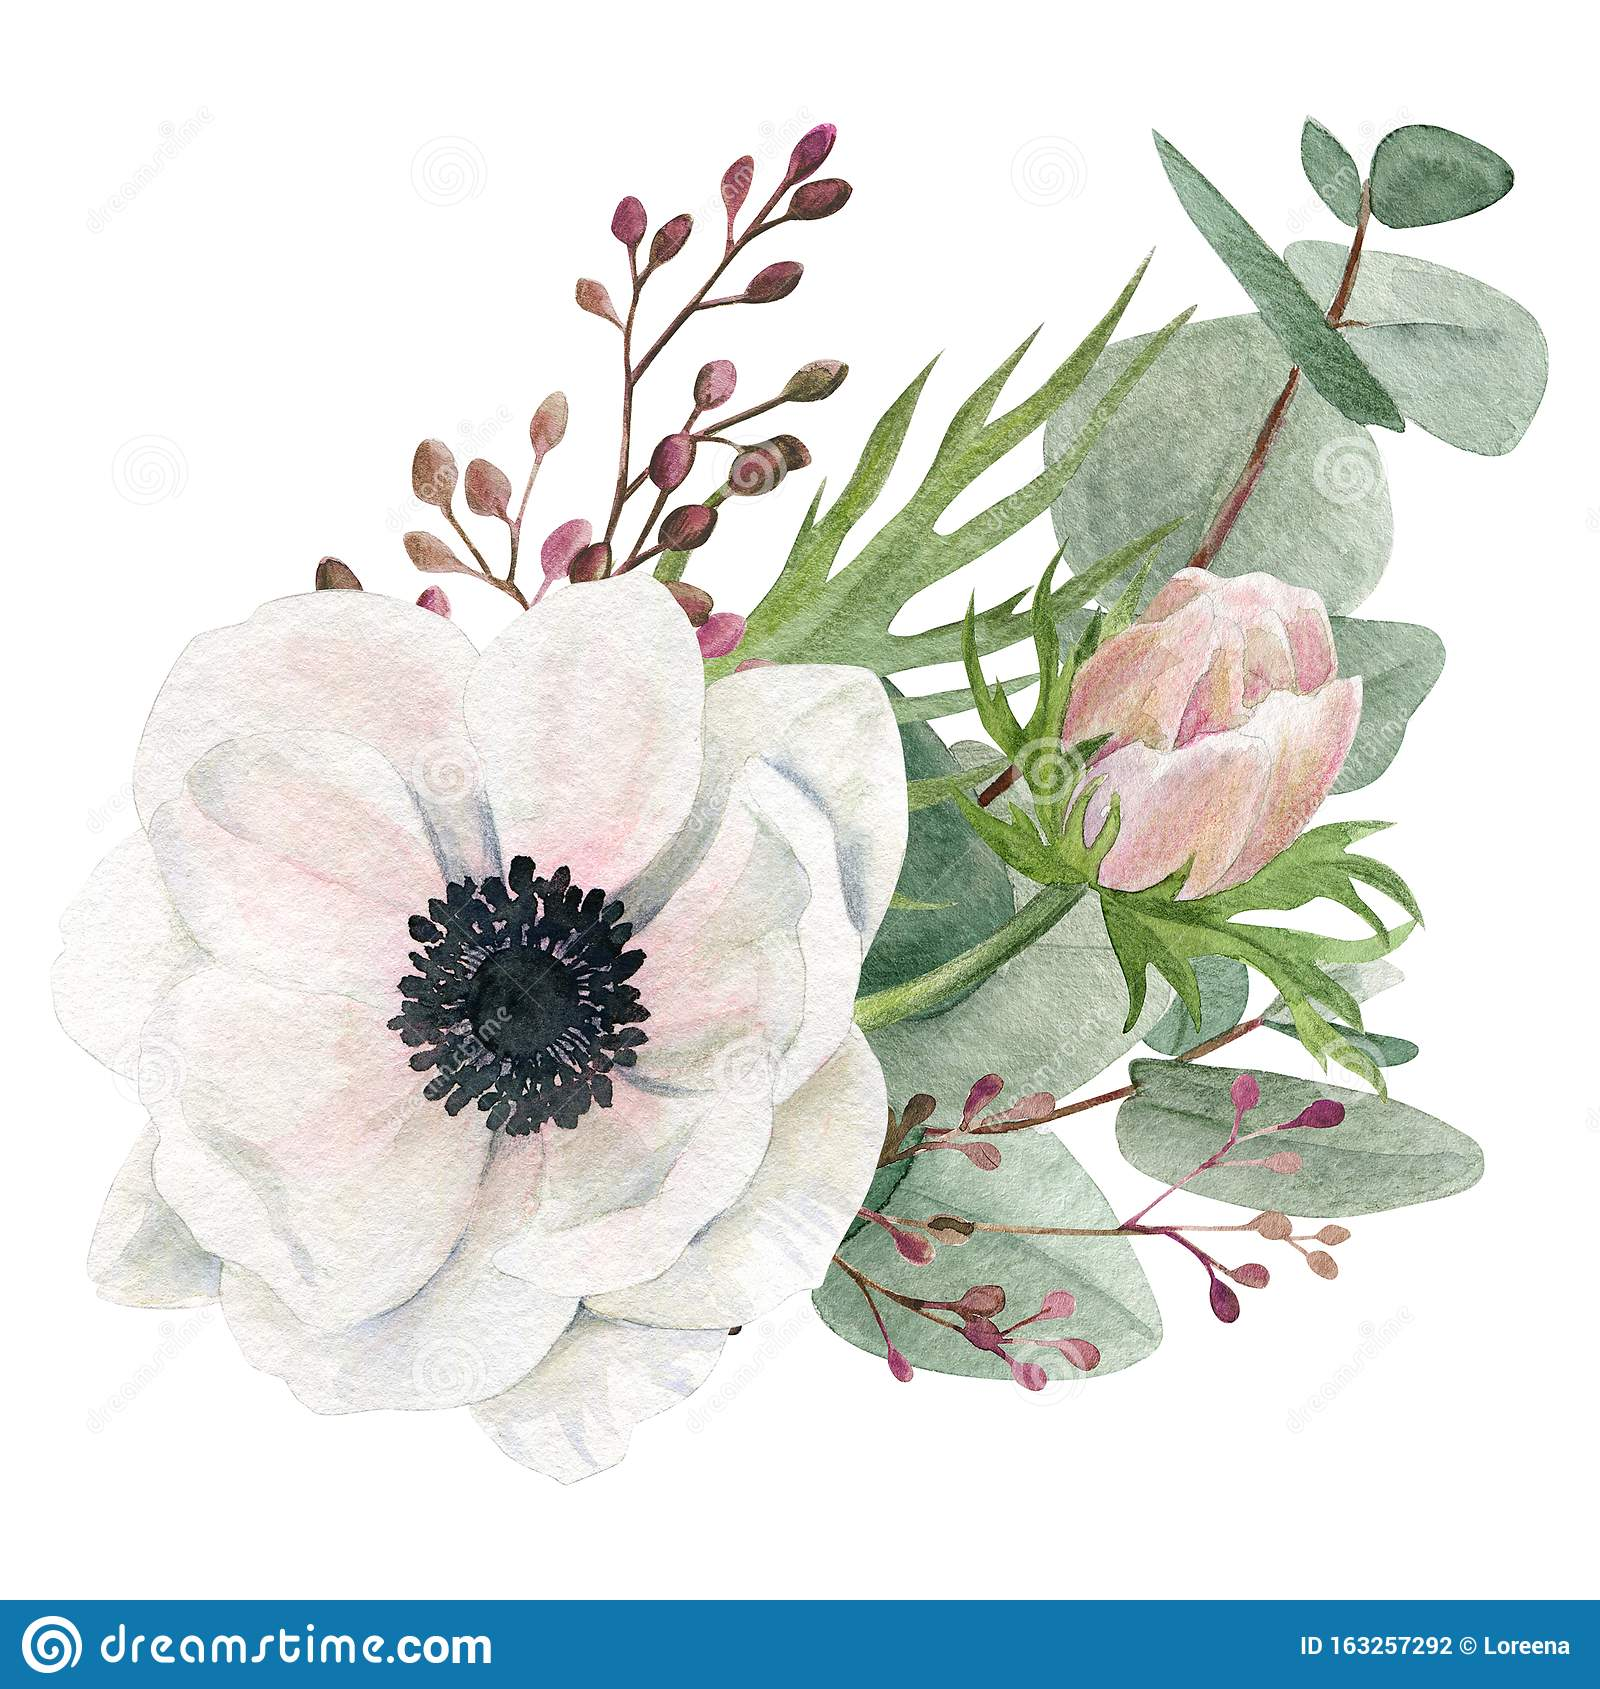 Watercolor Bouquet Hand Drawn Illustration Anemone And Greenery Stock Illustration Illustration Of Leaf Nature 163257292